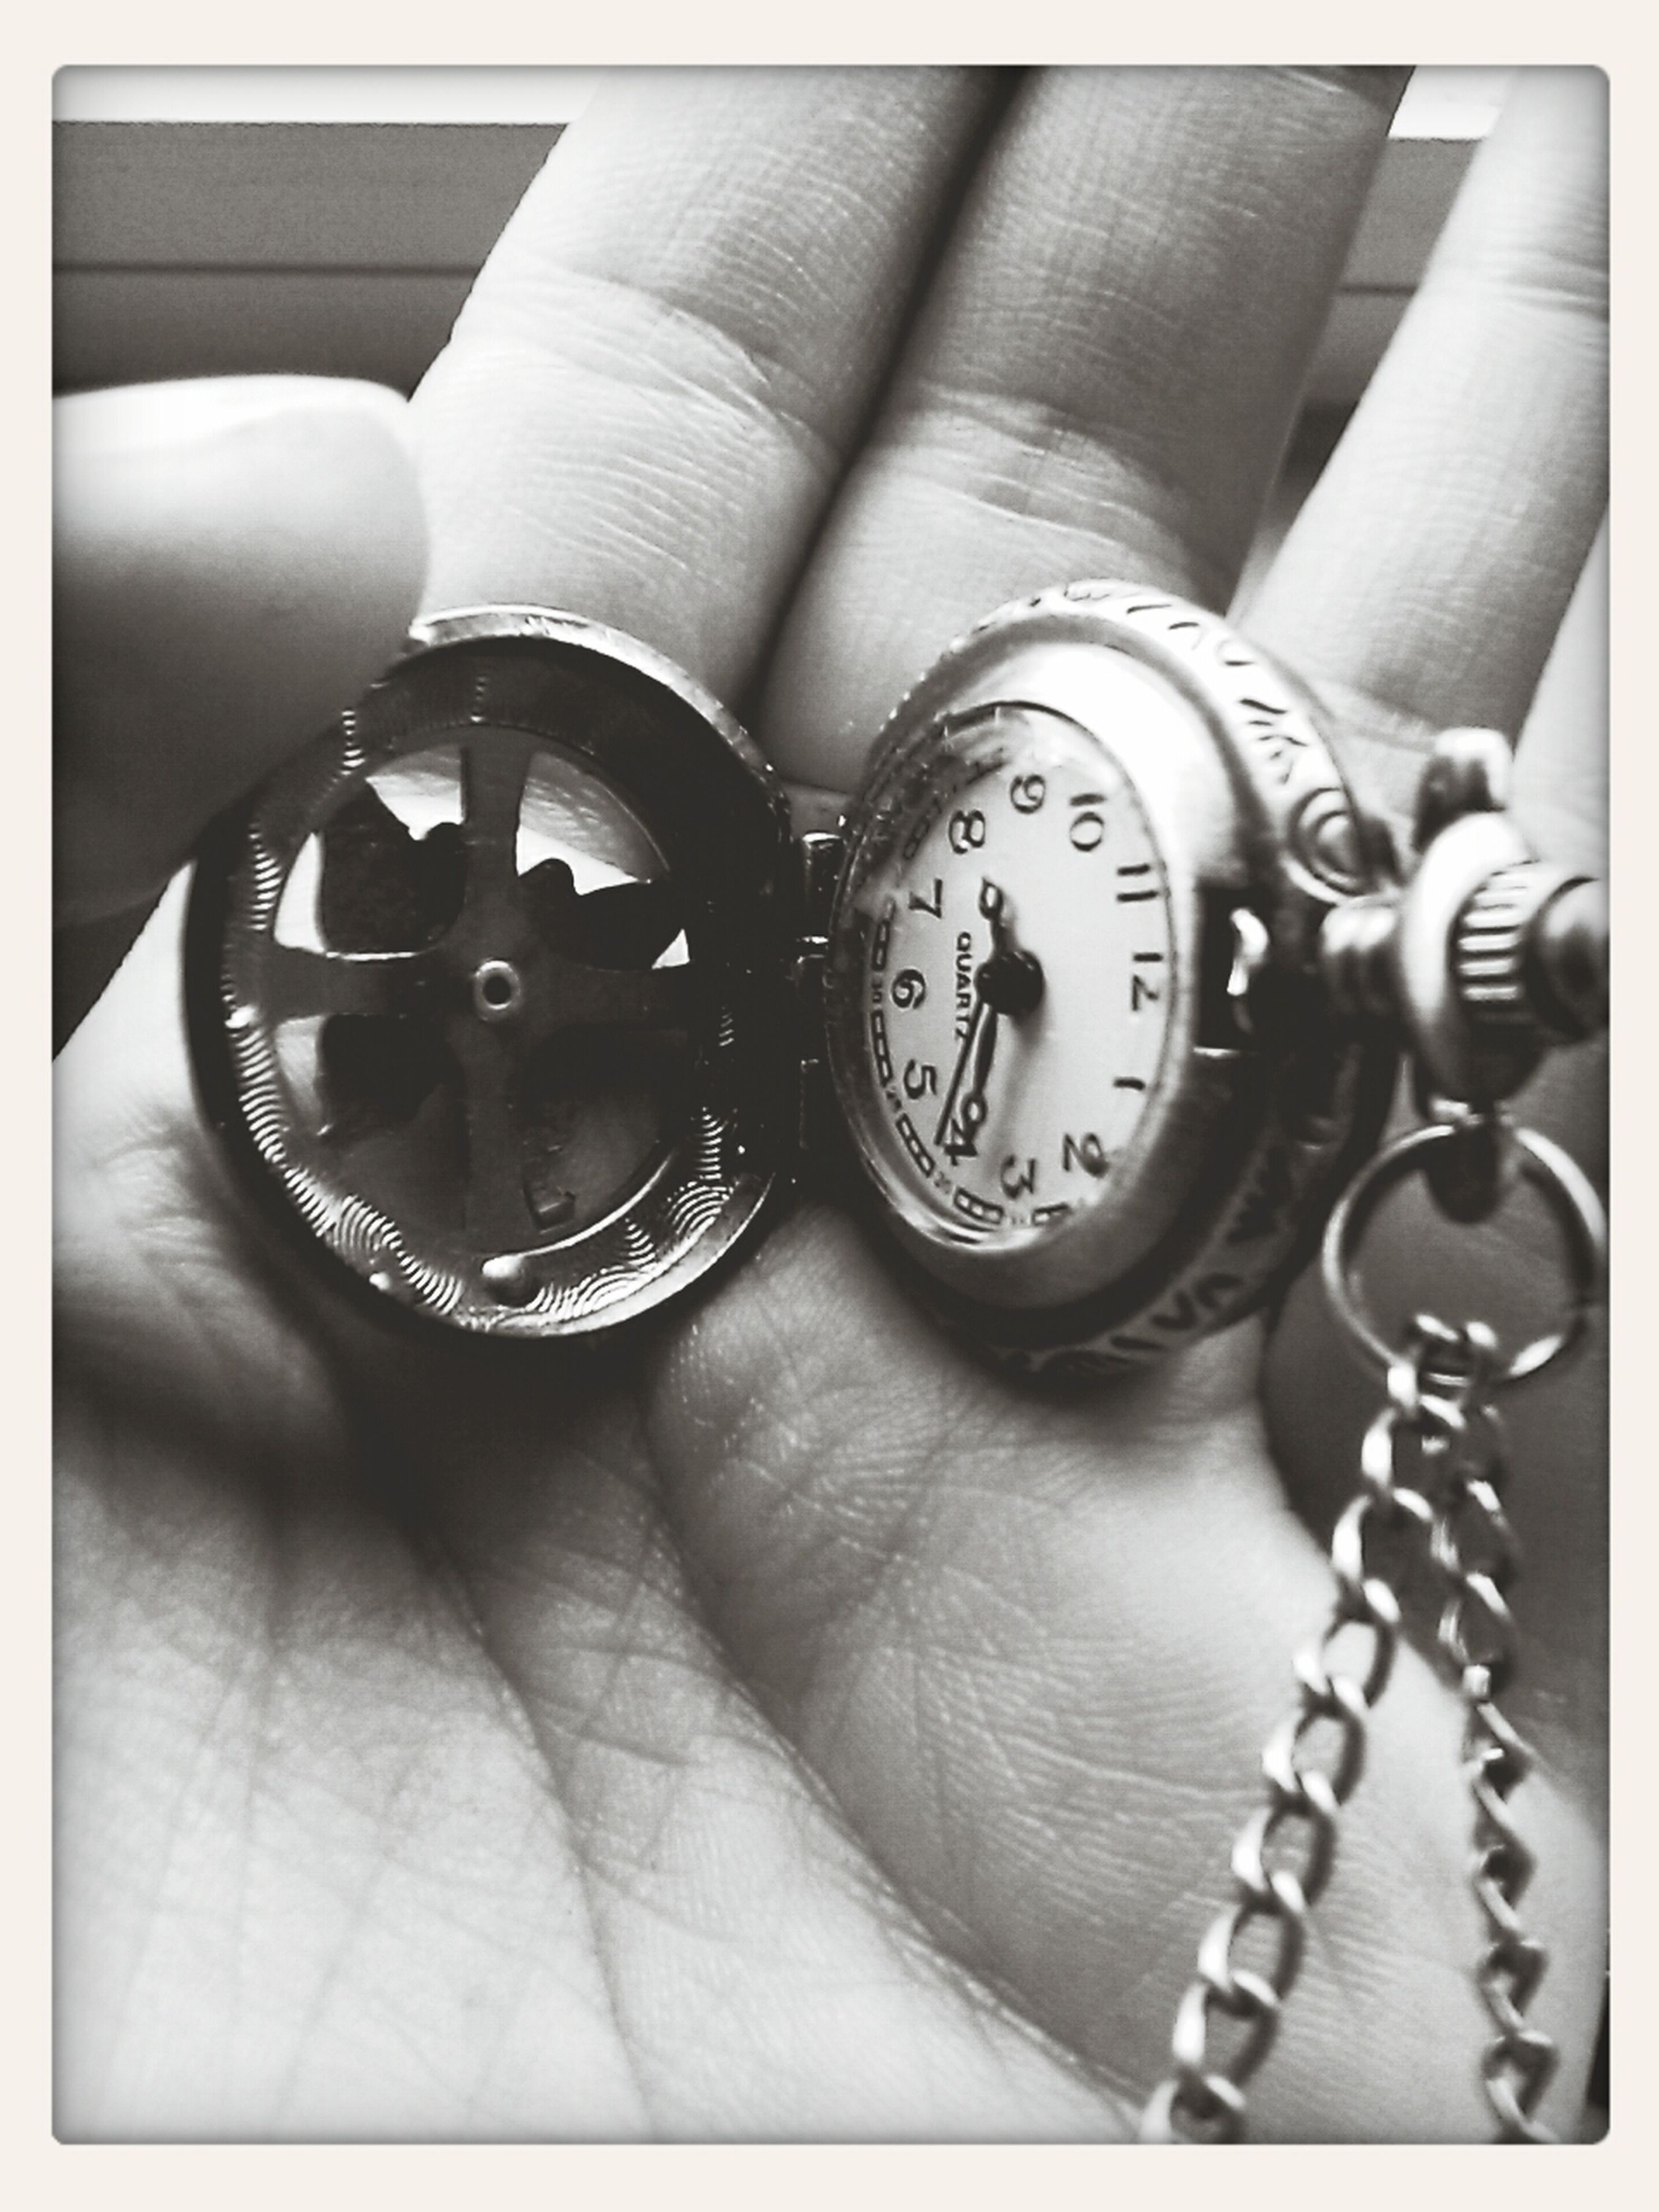 person, indoors, close-up, part of, time, technology, holding, accuracy, number, transfer print, clock, cropped, old-fashioned, photography themes, metal, connection, human finger